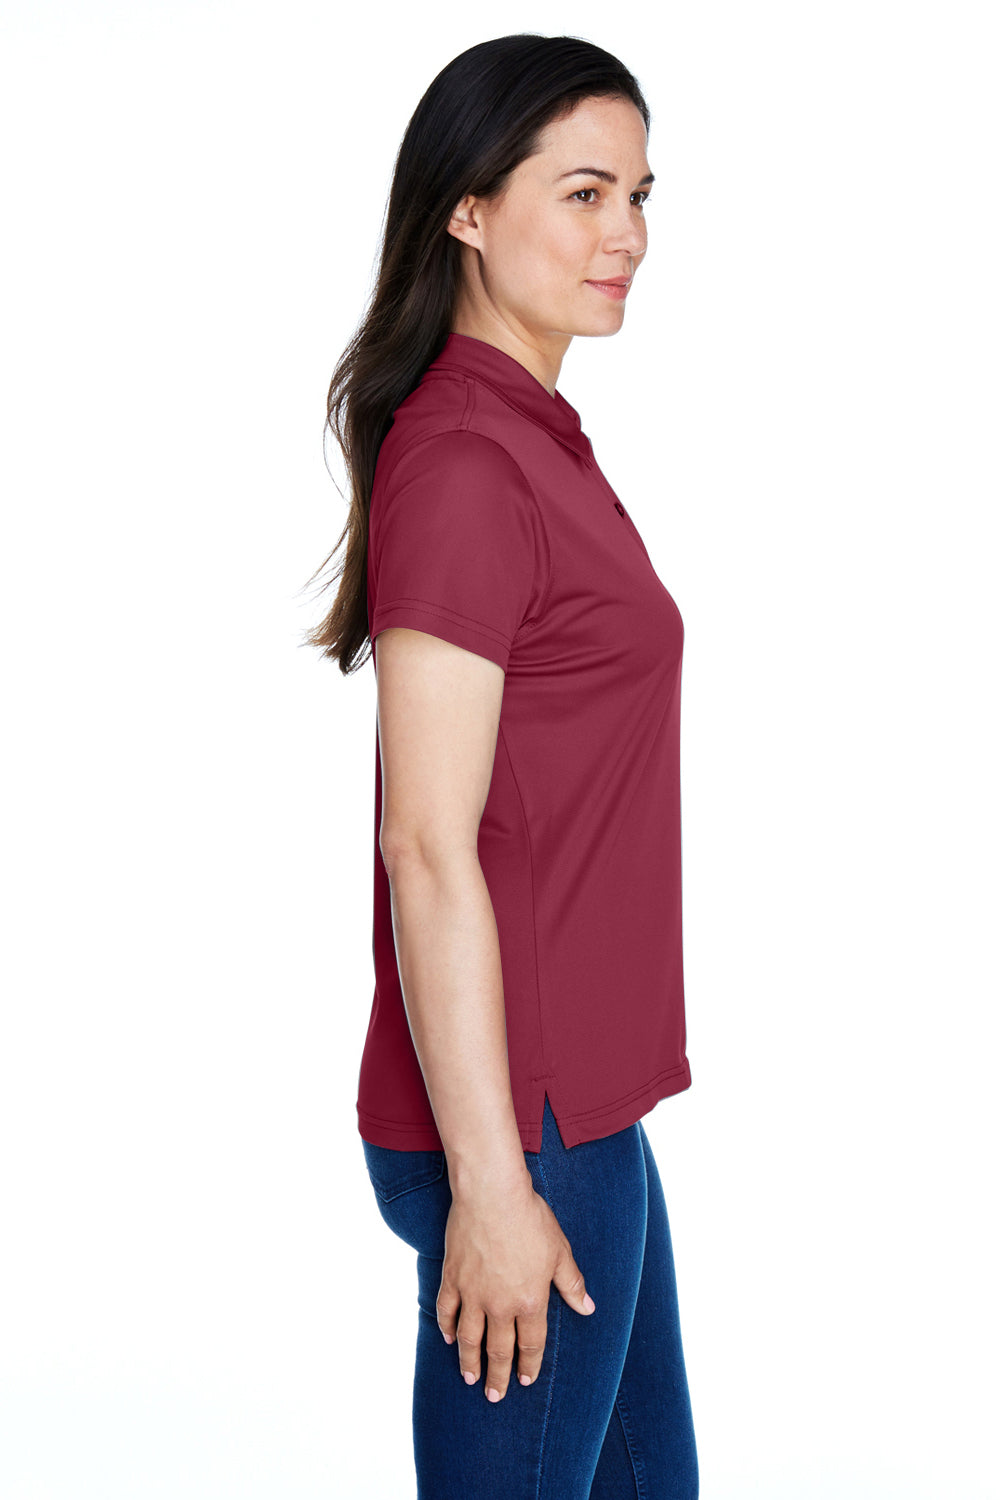 Team 365 TT21W Womens Command Performance Moisture Wicking Short Sleeve Polo Shirt Maroon Side